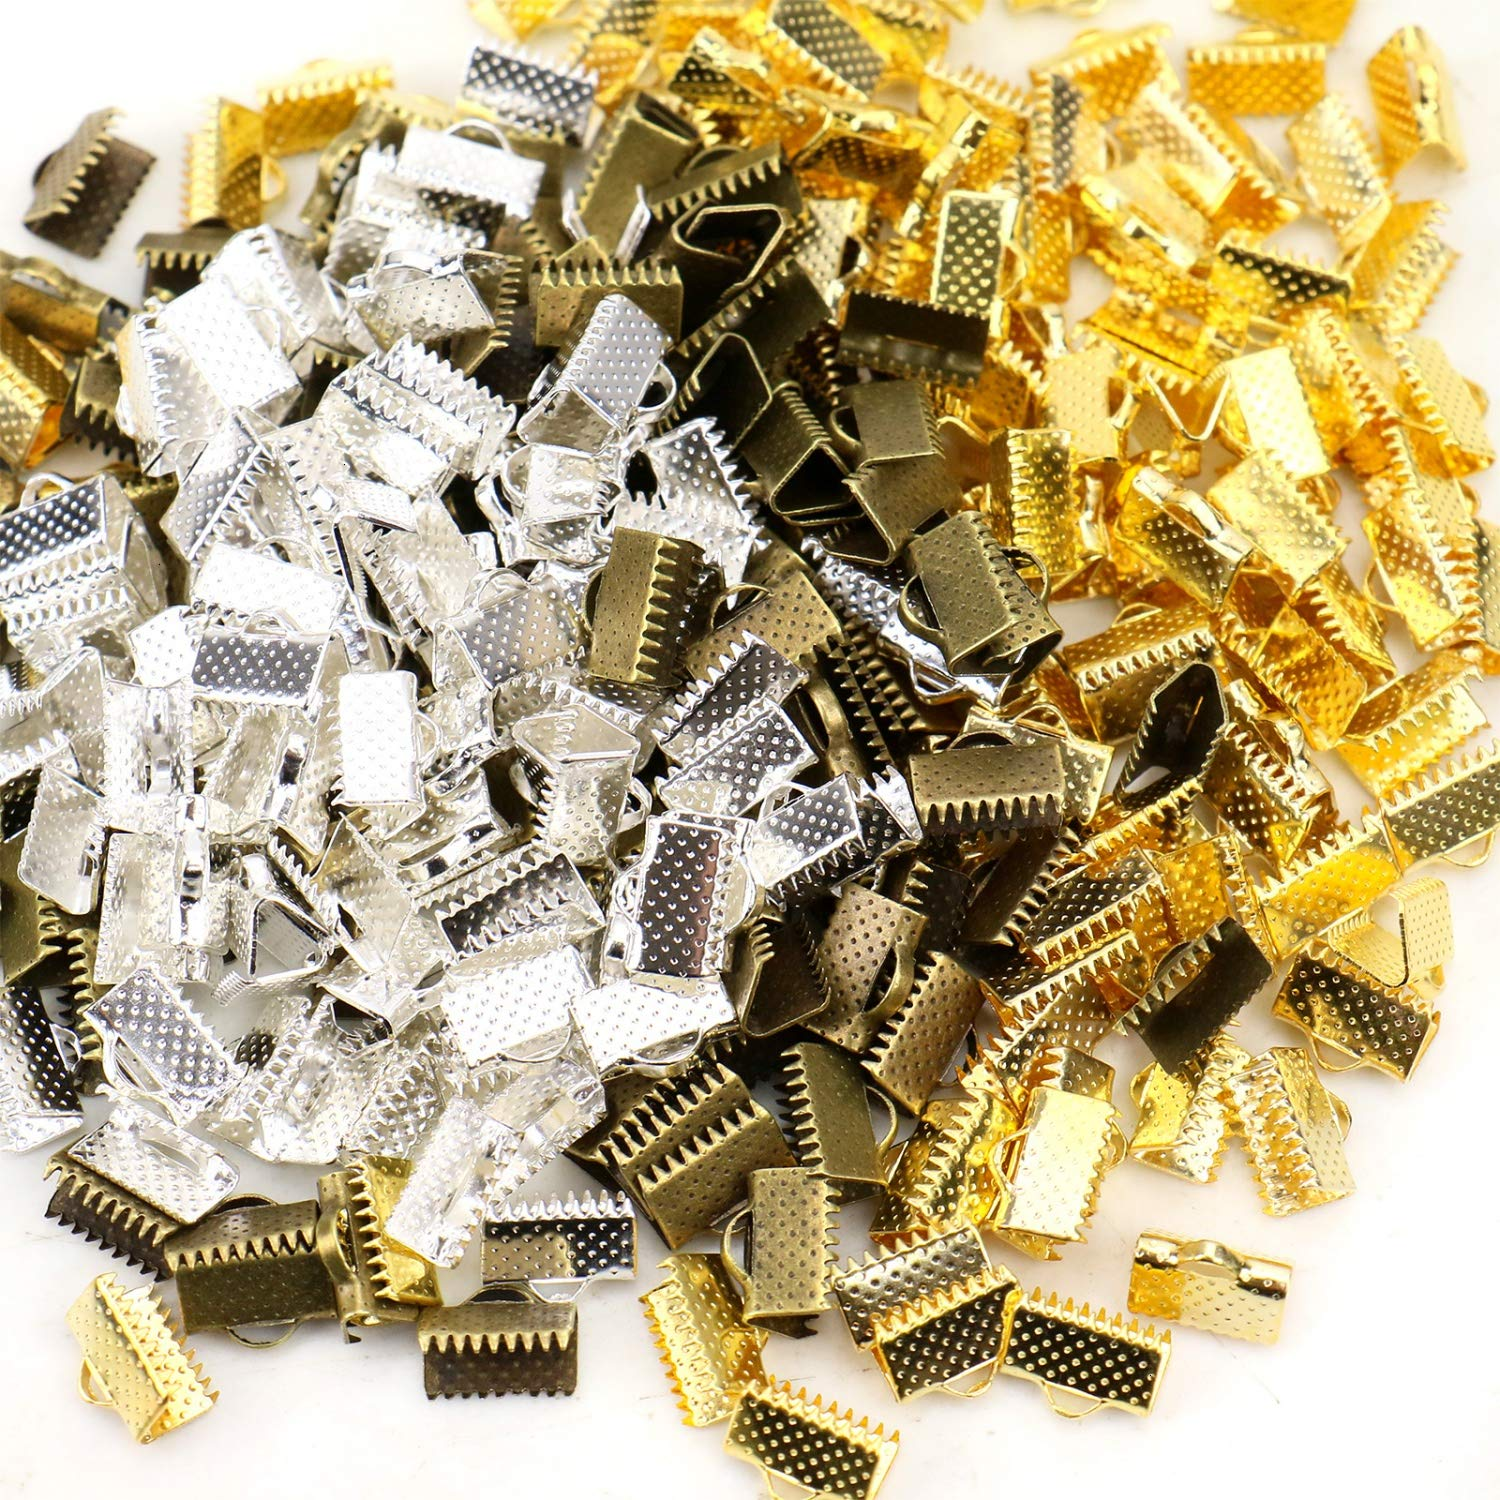 10mm JETEHO 300Pcs Ribbon Clamp Crimps Pinch Crimps End Beads Clasps Hook Tips Connectors DIY Craft Jewelry Making Findings